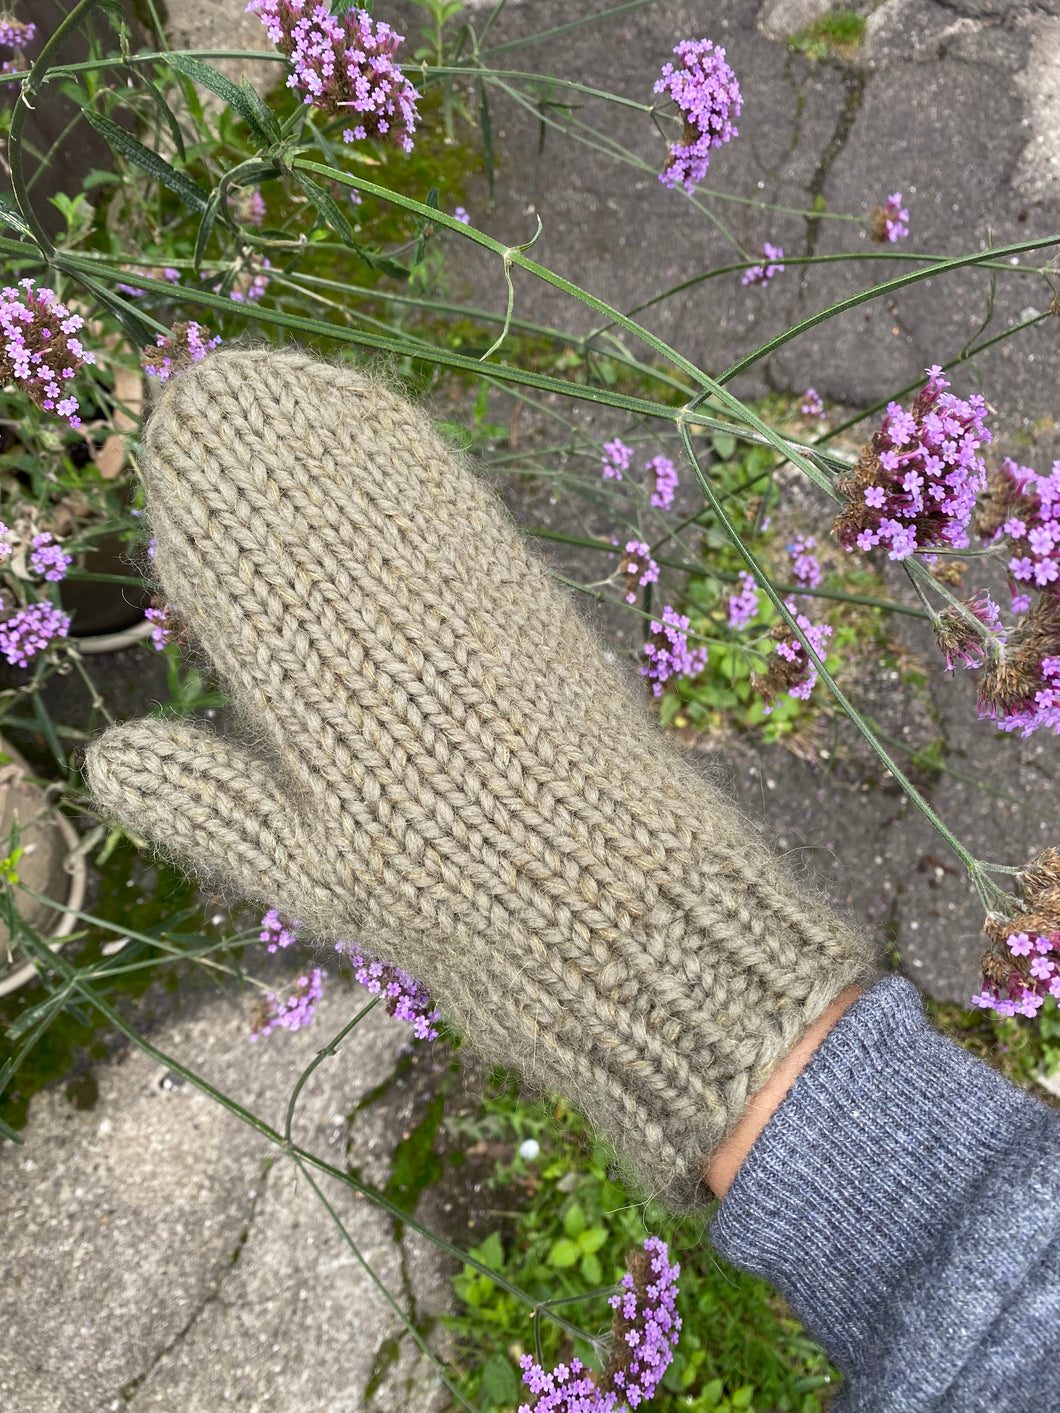 deima's winter mittens - knitting pattern (dansk)